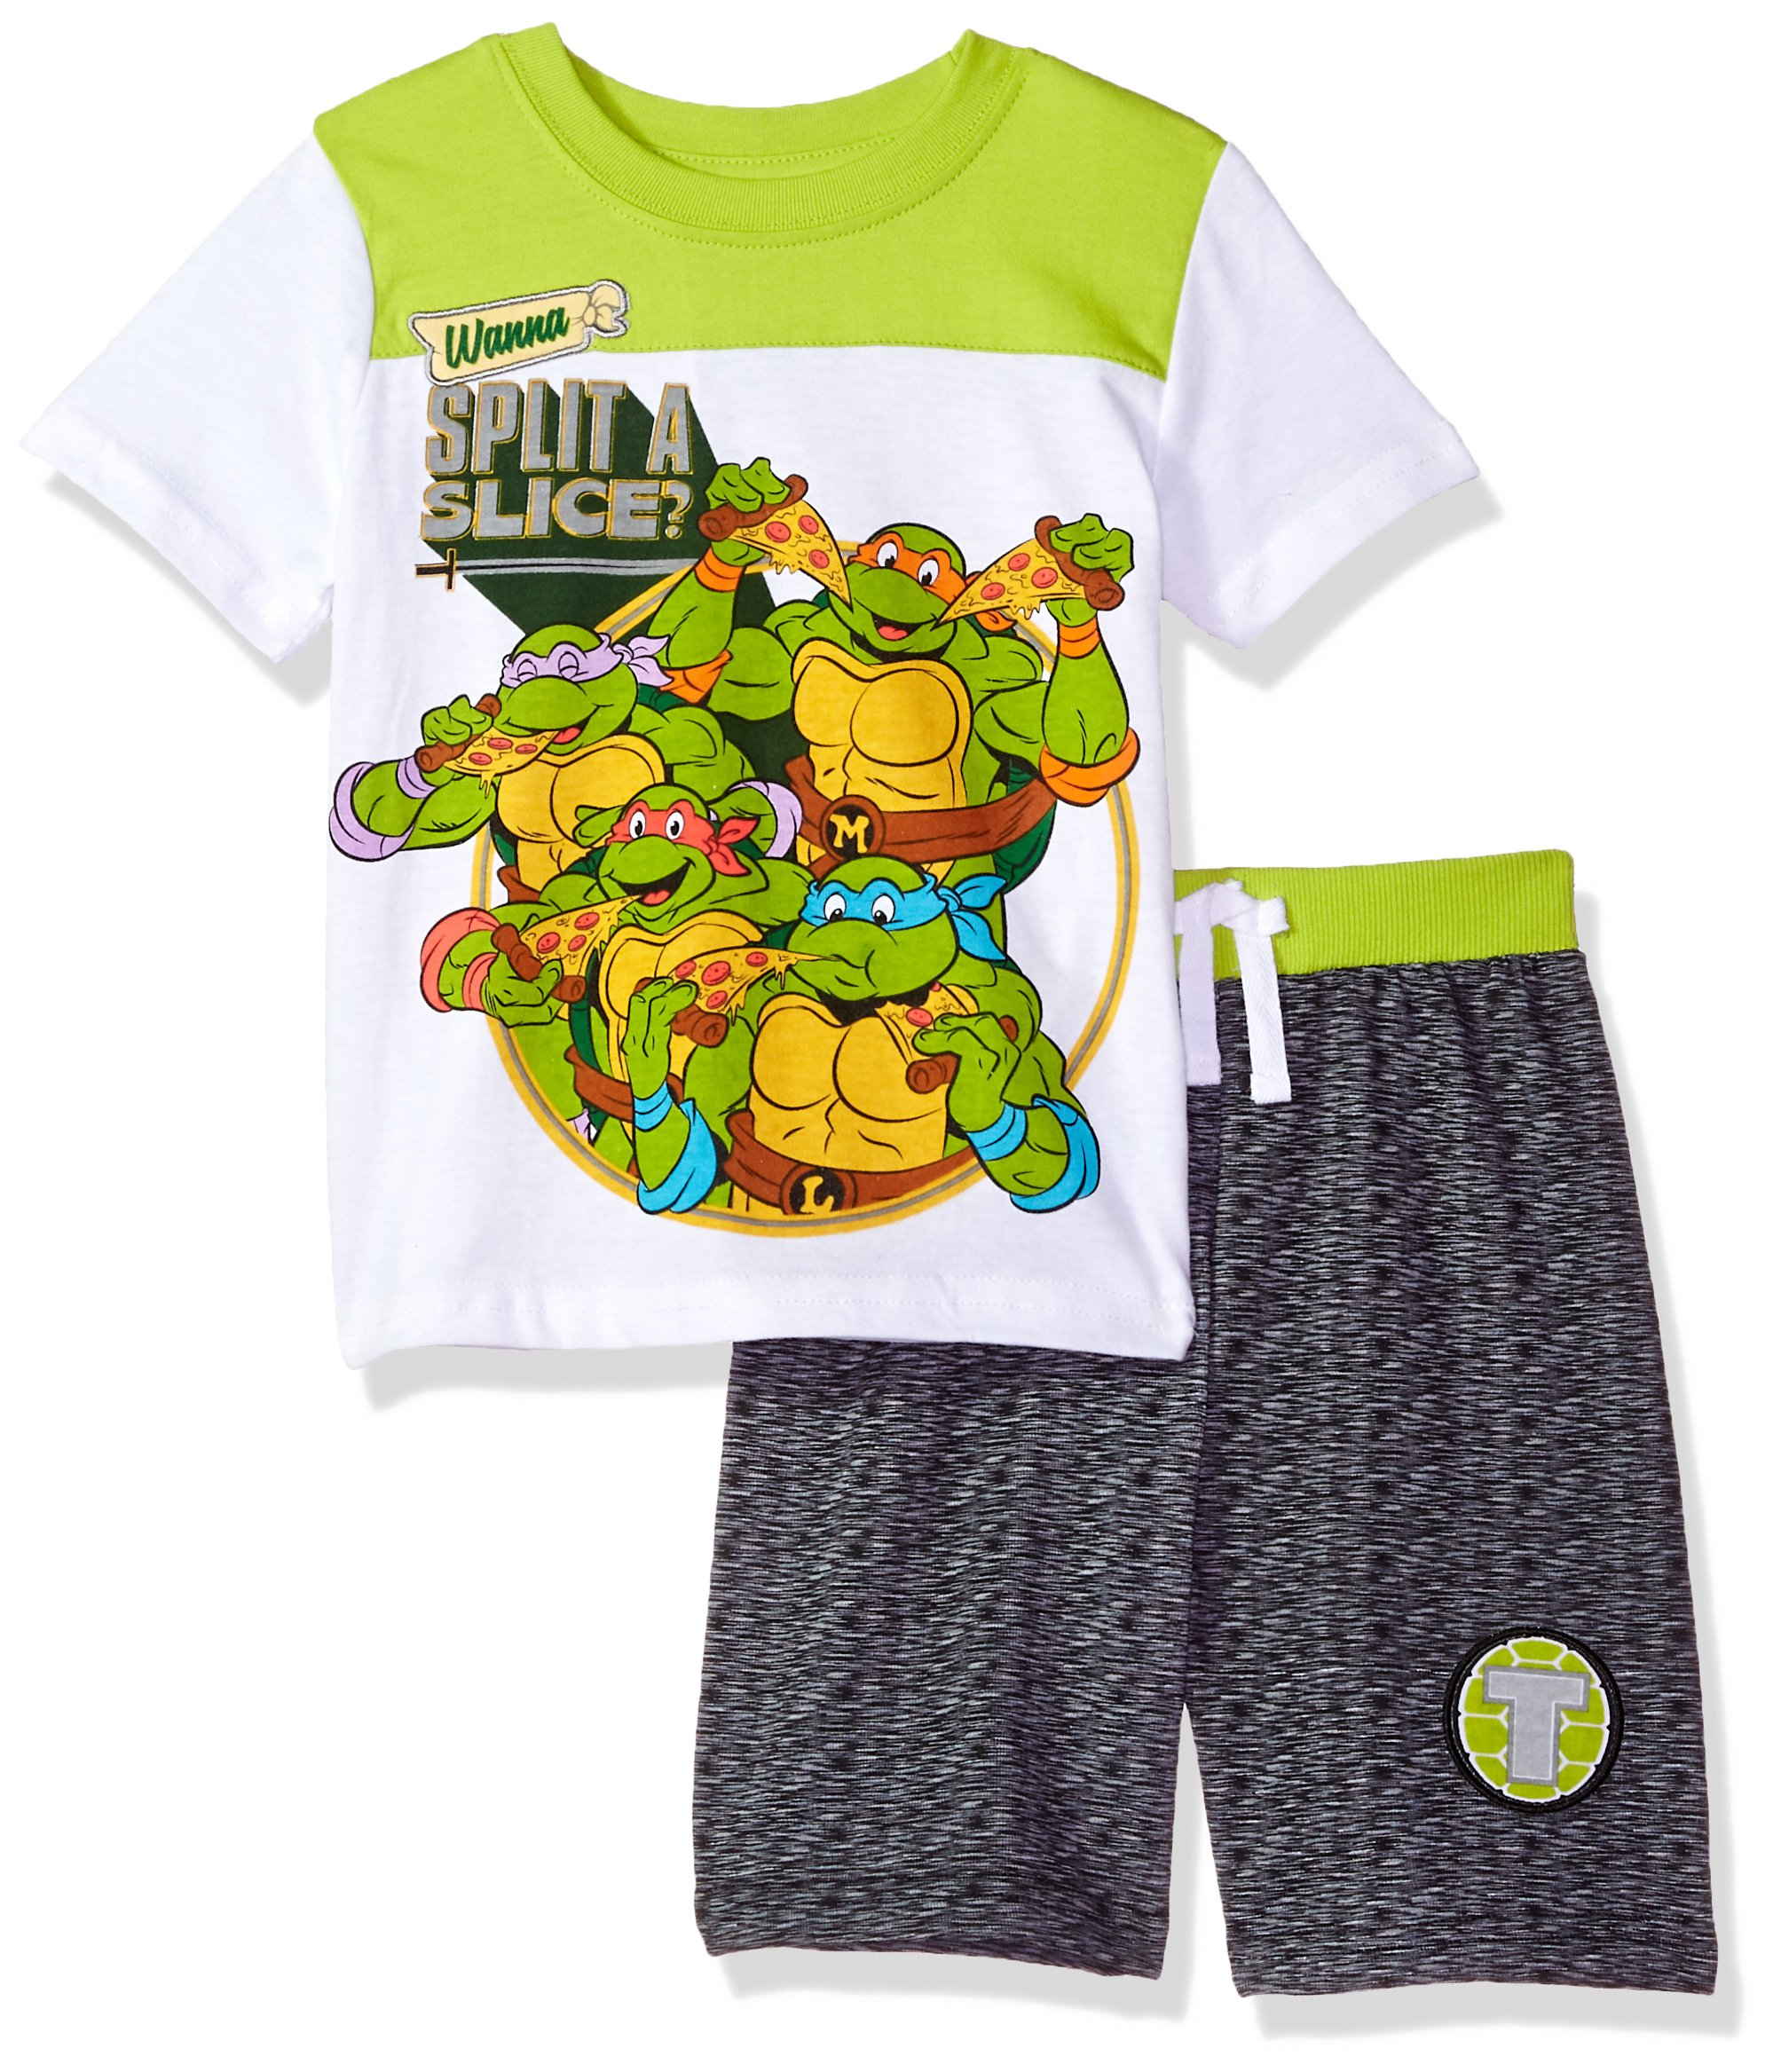 Nickelodeon Toddler Boys' Ninja Turtles Crew Neck Short Set, White, 2T